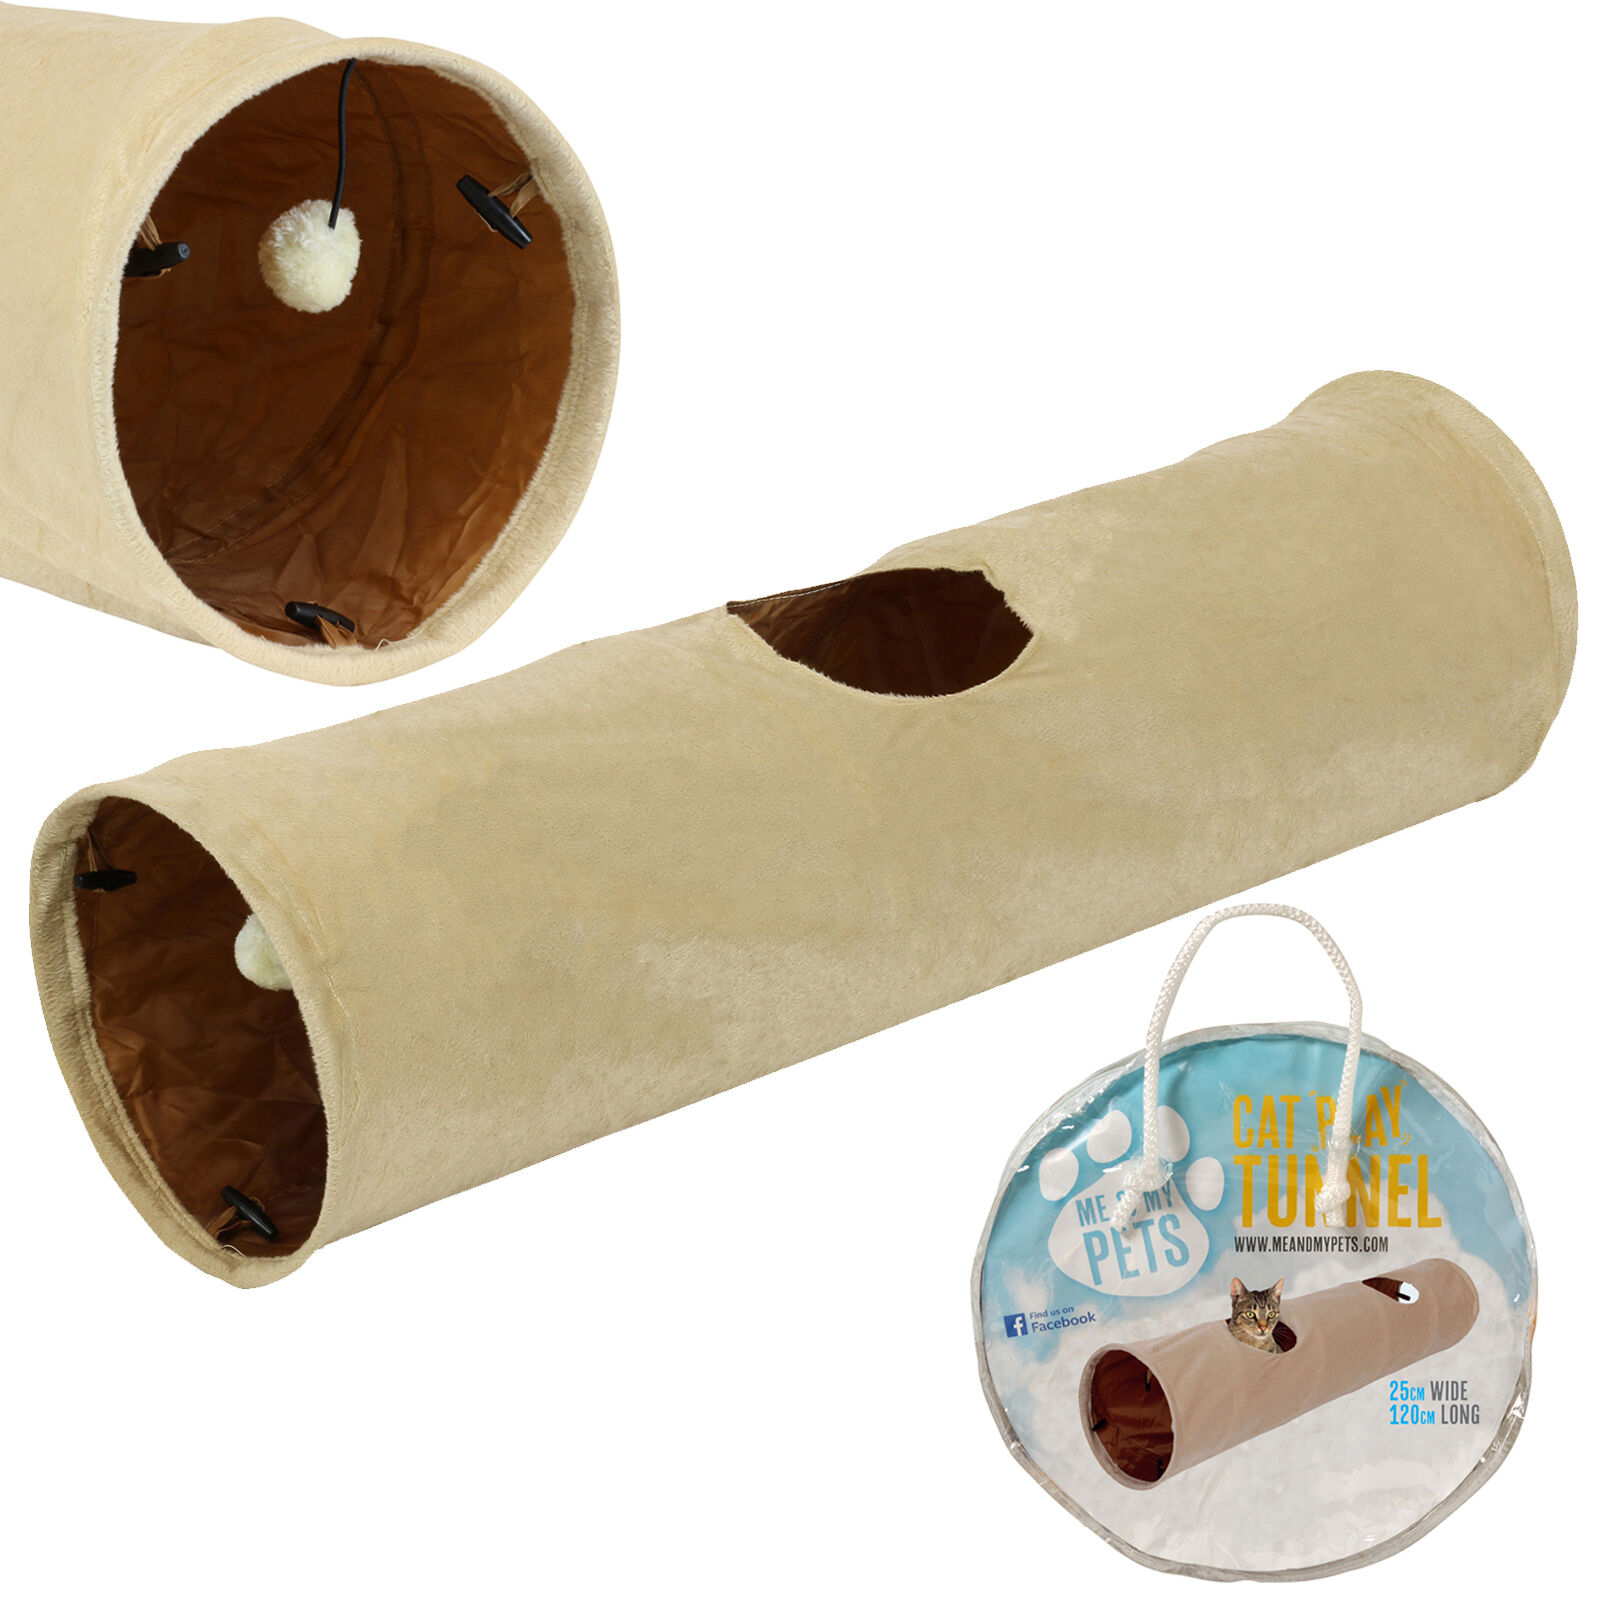 Me & My Medium Cat/kitten Crinkly Play Tunnel Puppy/rabbit Fun Toy Collapsible